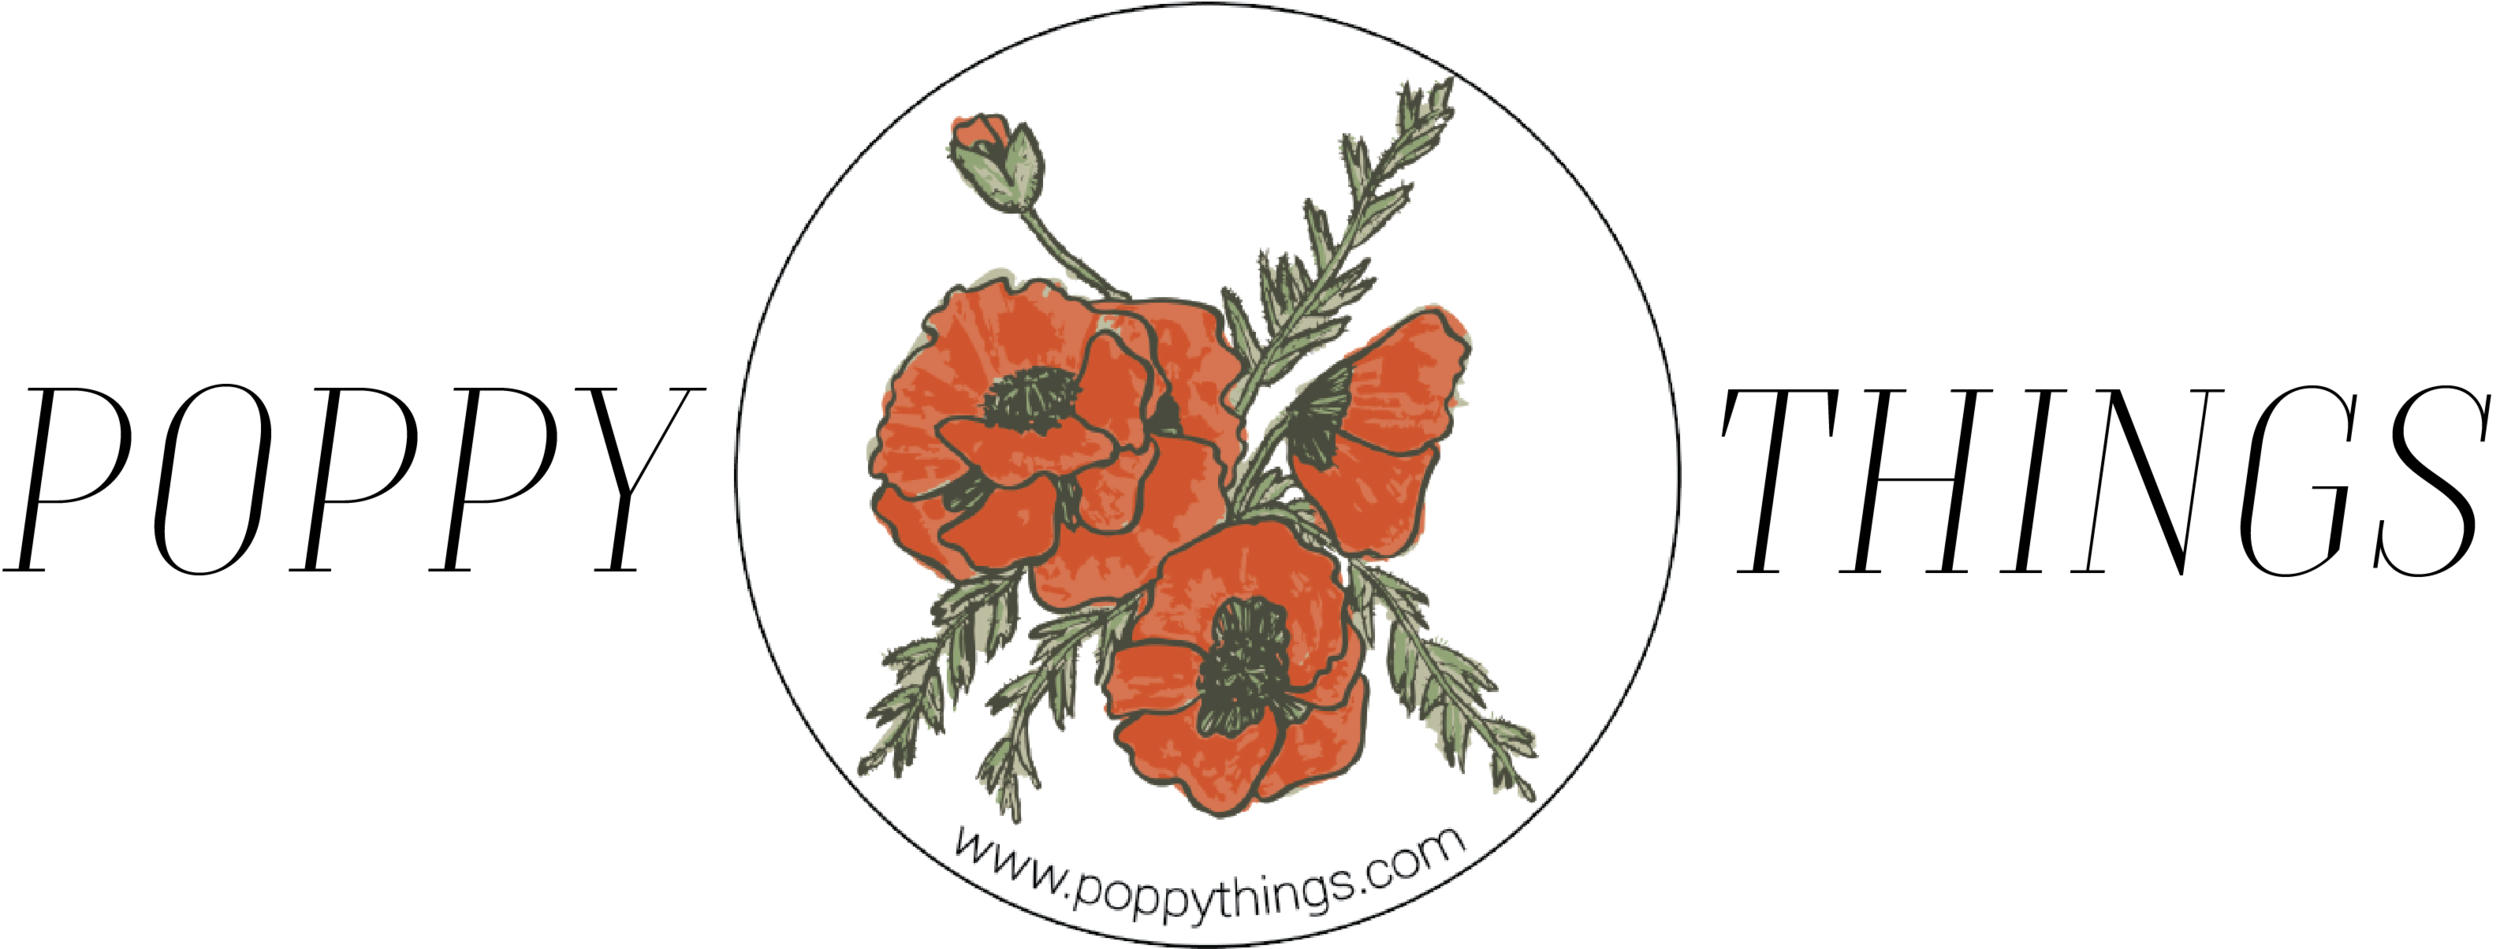 Poppy Things